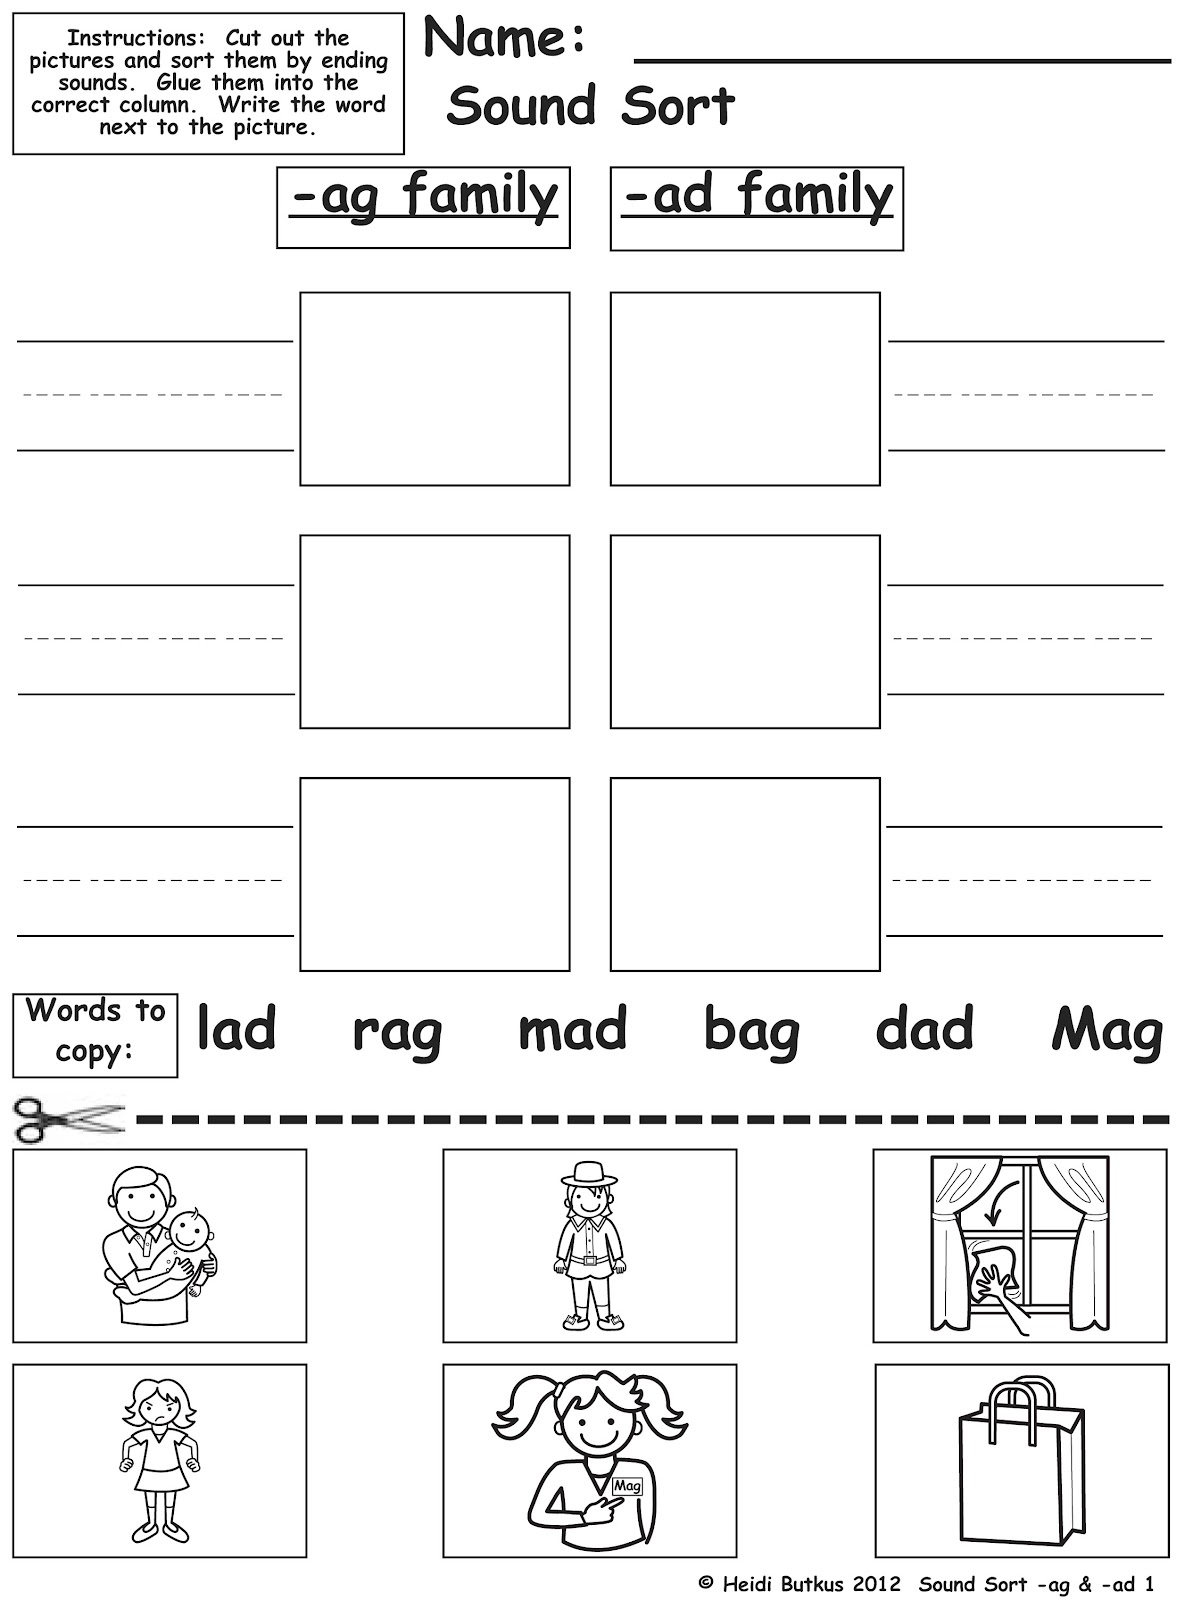 worksheet Kindergarten Cvc Words Worksheets a new heidisongs cvc book is here heidi songs this one of the sound sort worksheets for short vowel unit